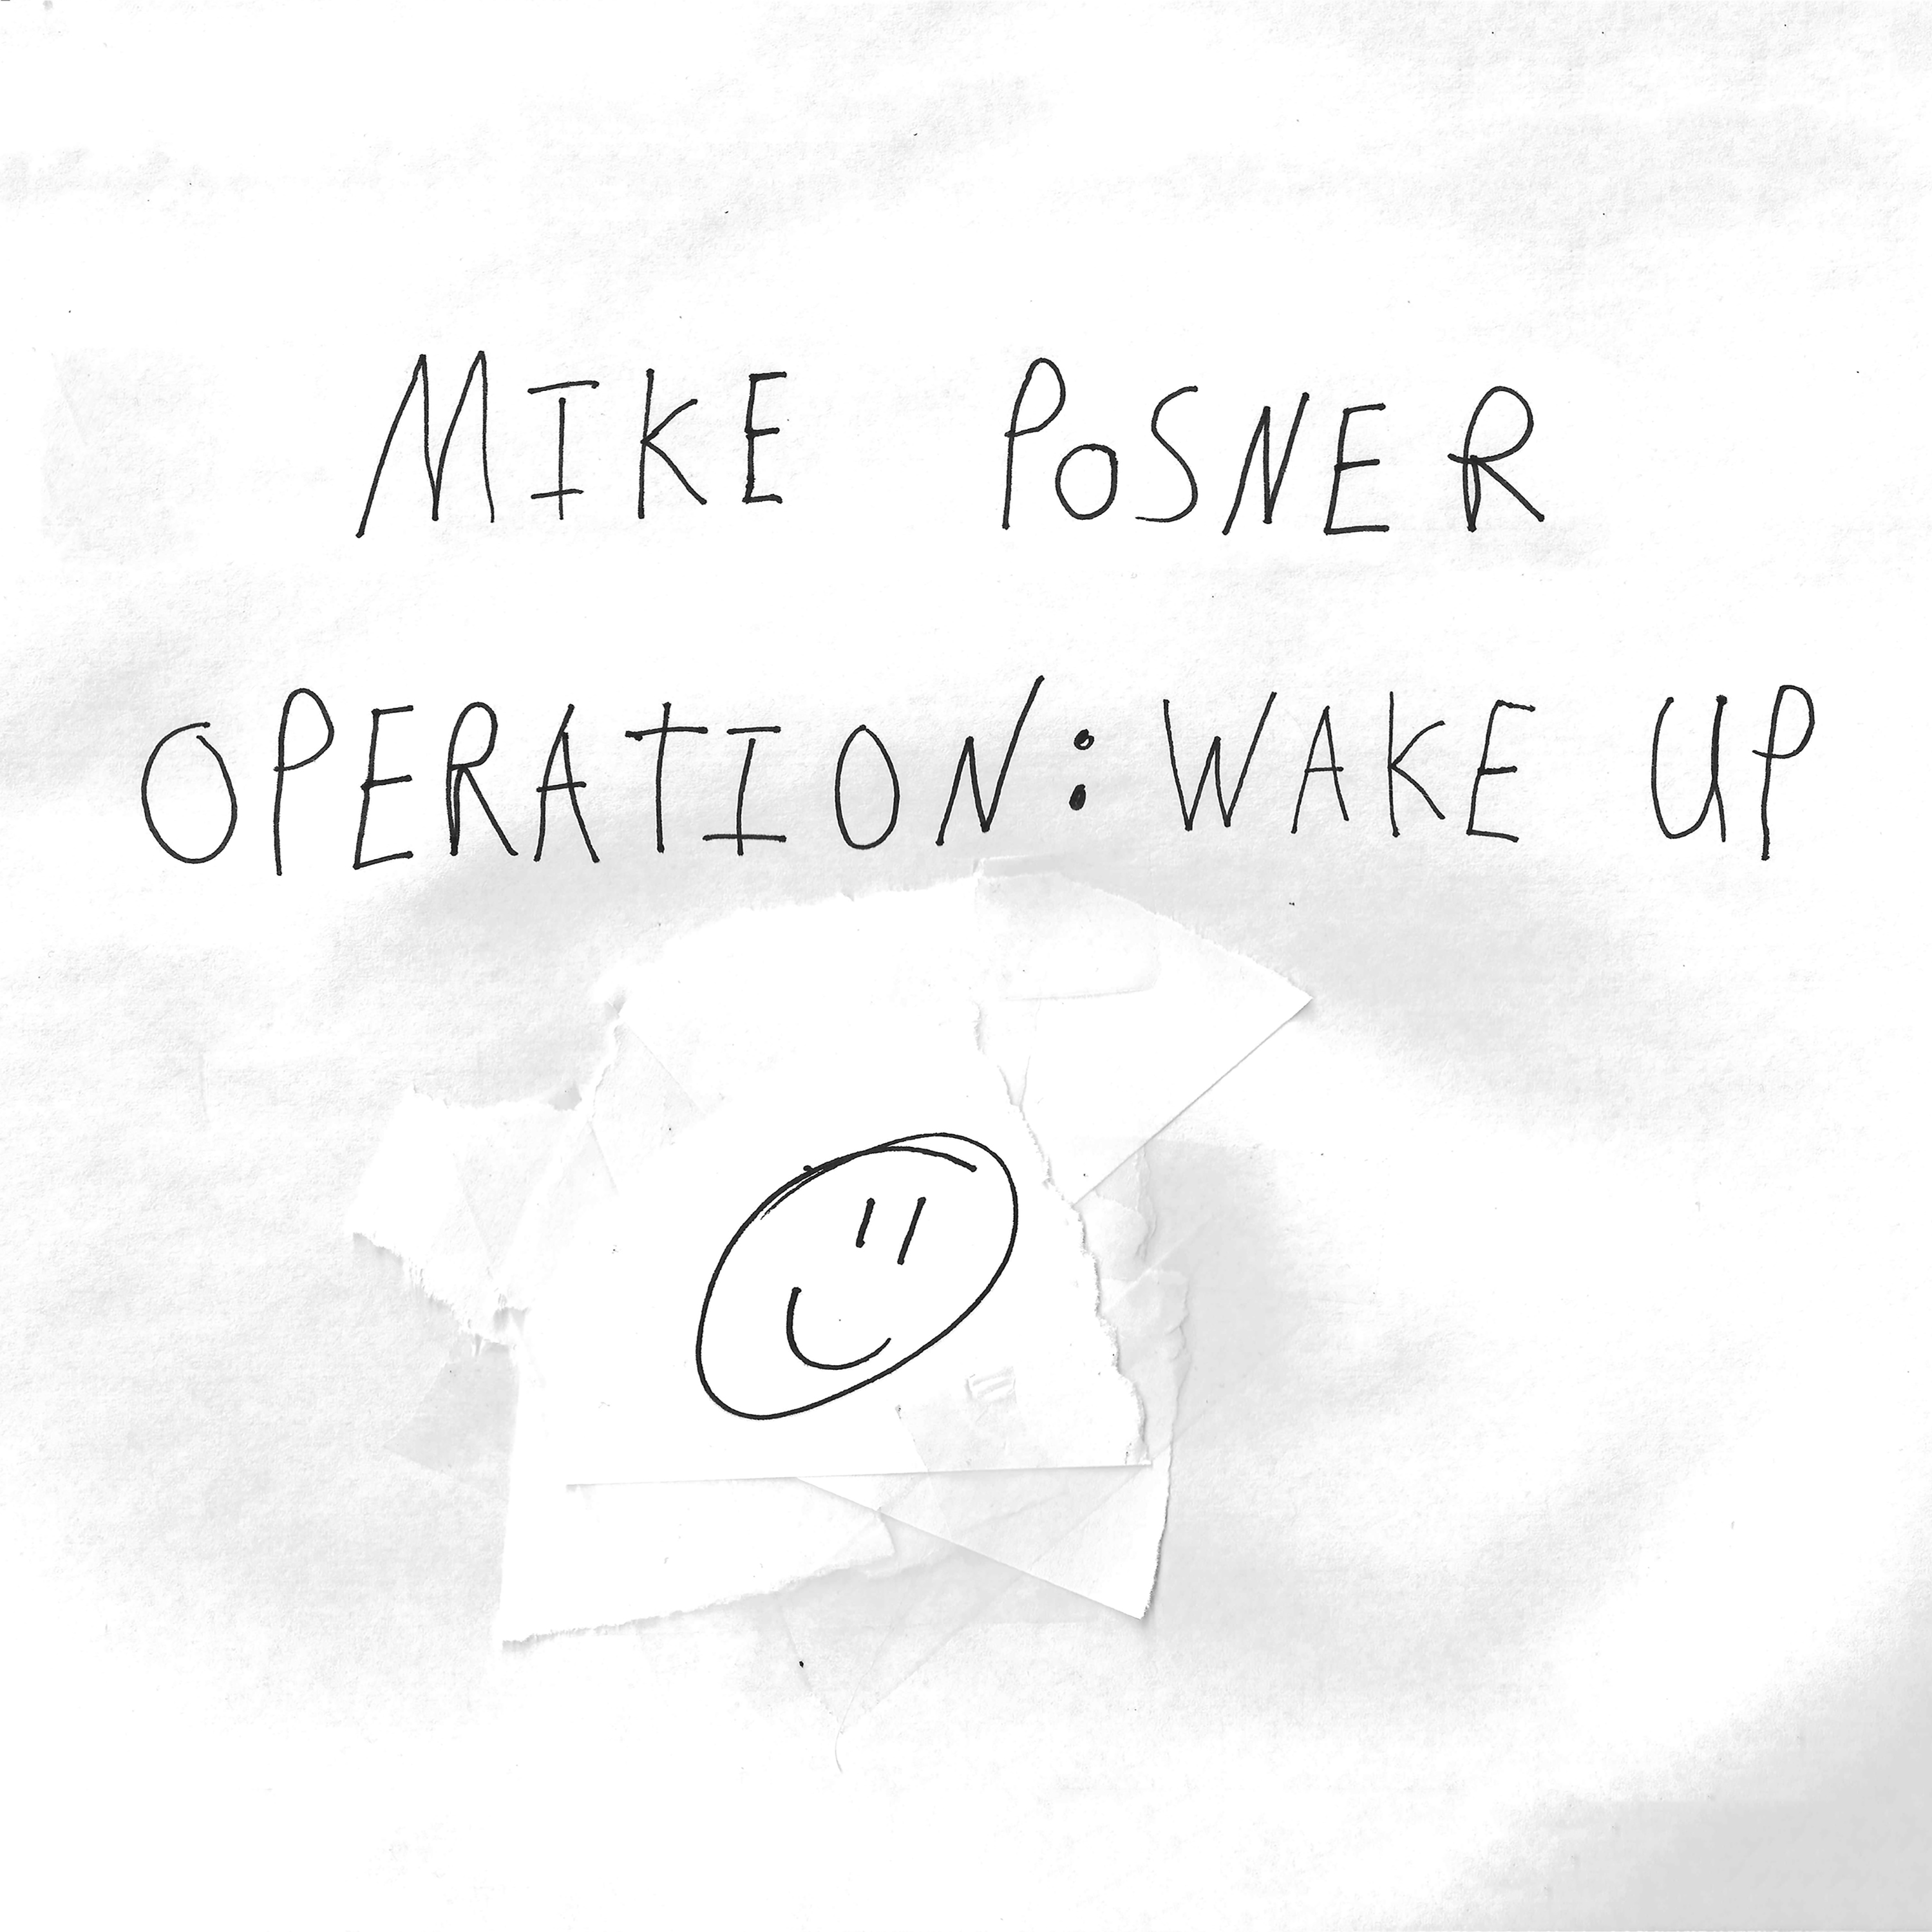 Operation: Wake Up Image